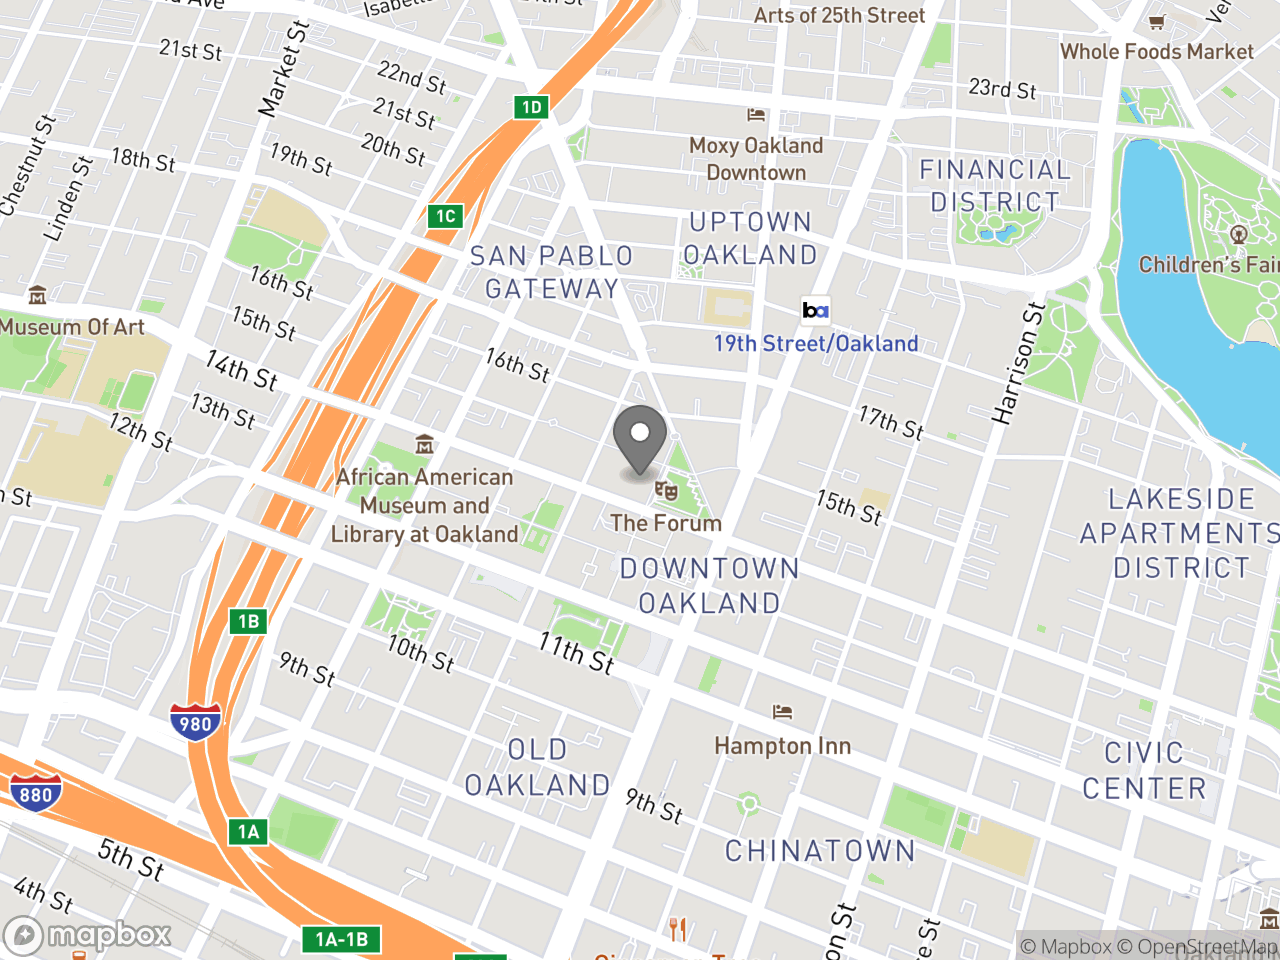 Map image for August 13, 2018 Landmarks Preservation Advisory Board, located at 1 Frank H Ogawa Plaza in Oakland, CA 94612